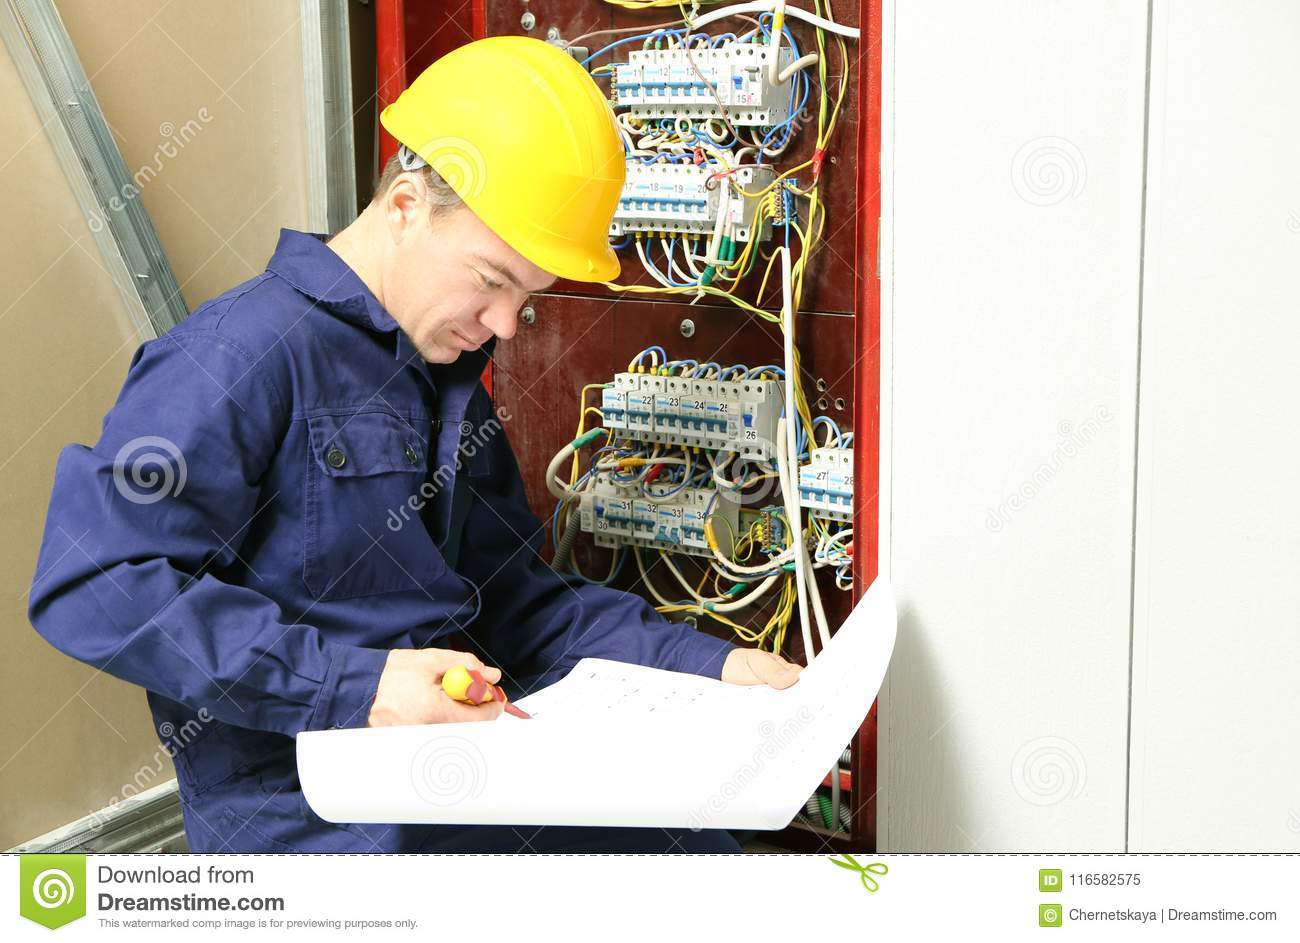 Distribution Board Wiring Diagram Electrician Checking Connections In According To